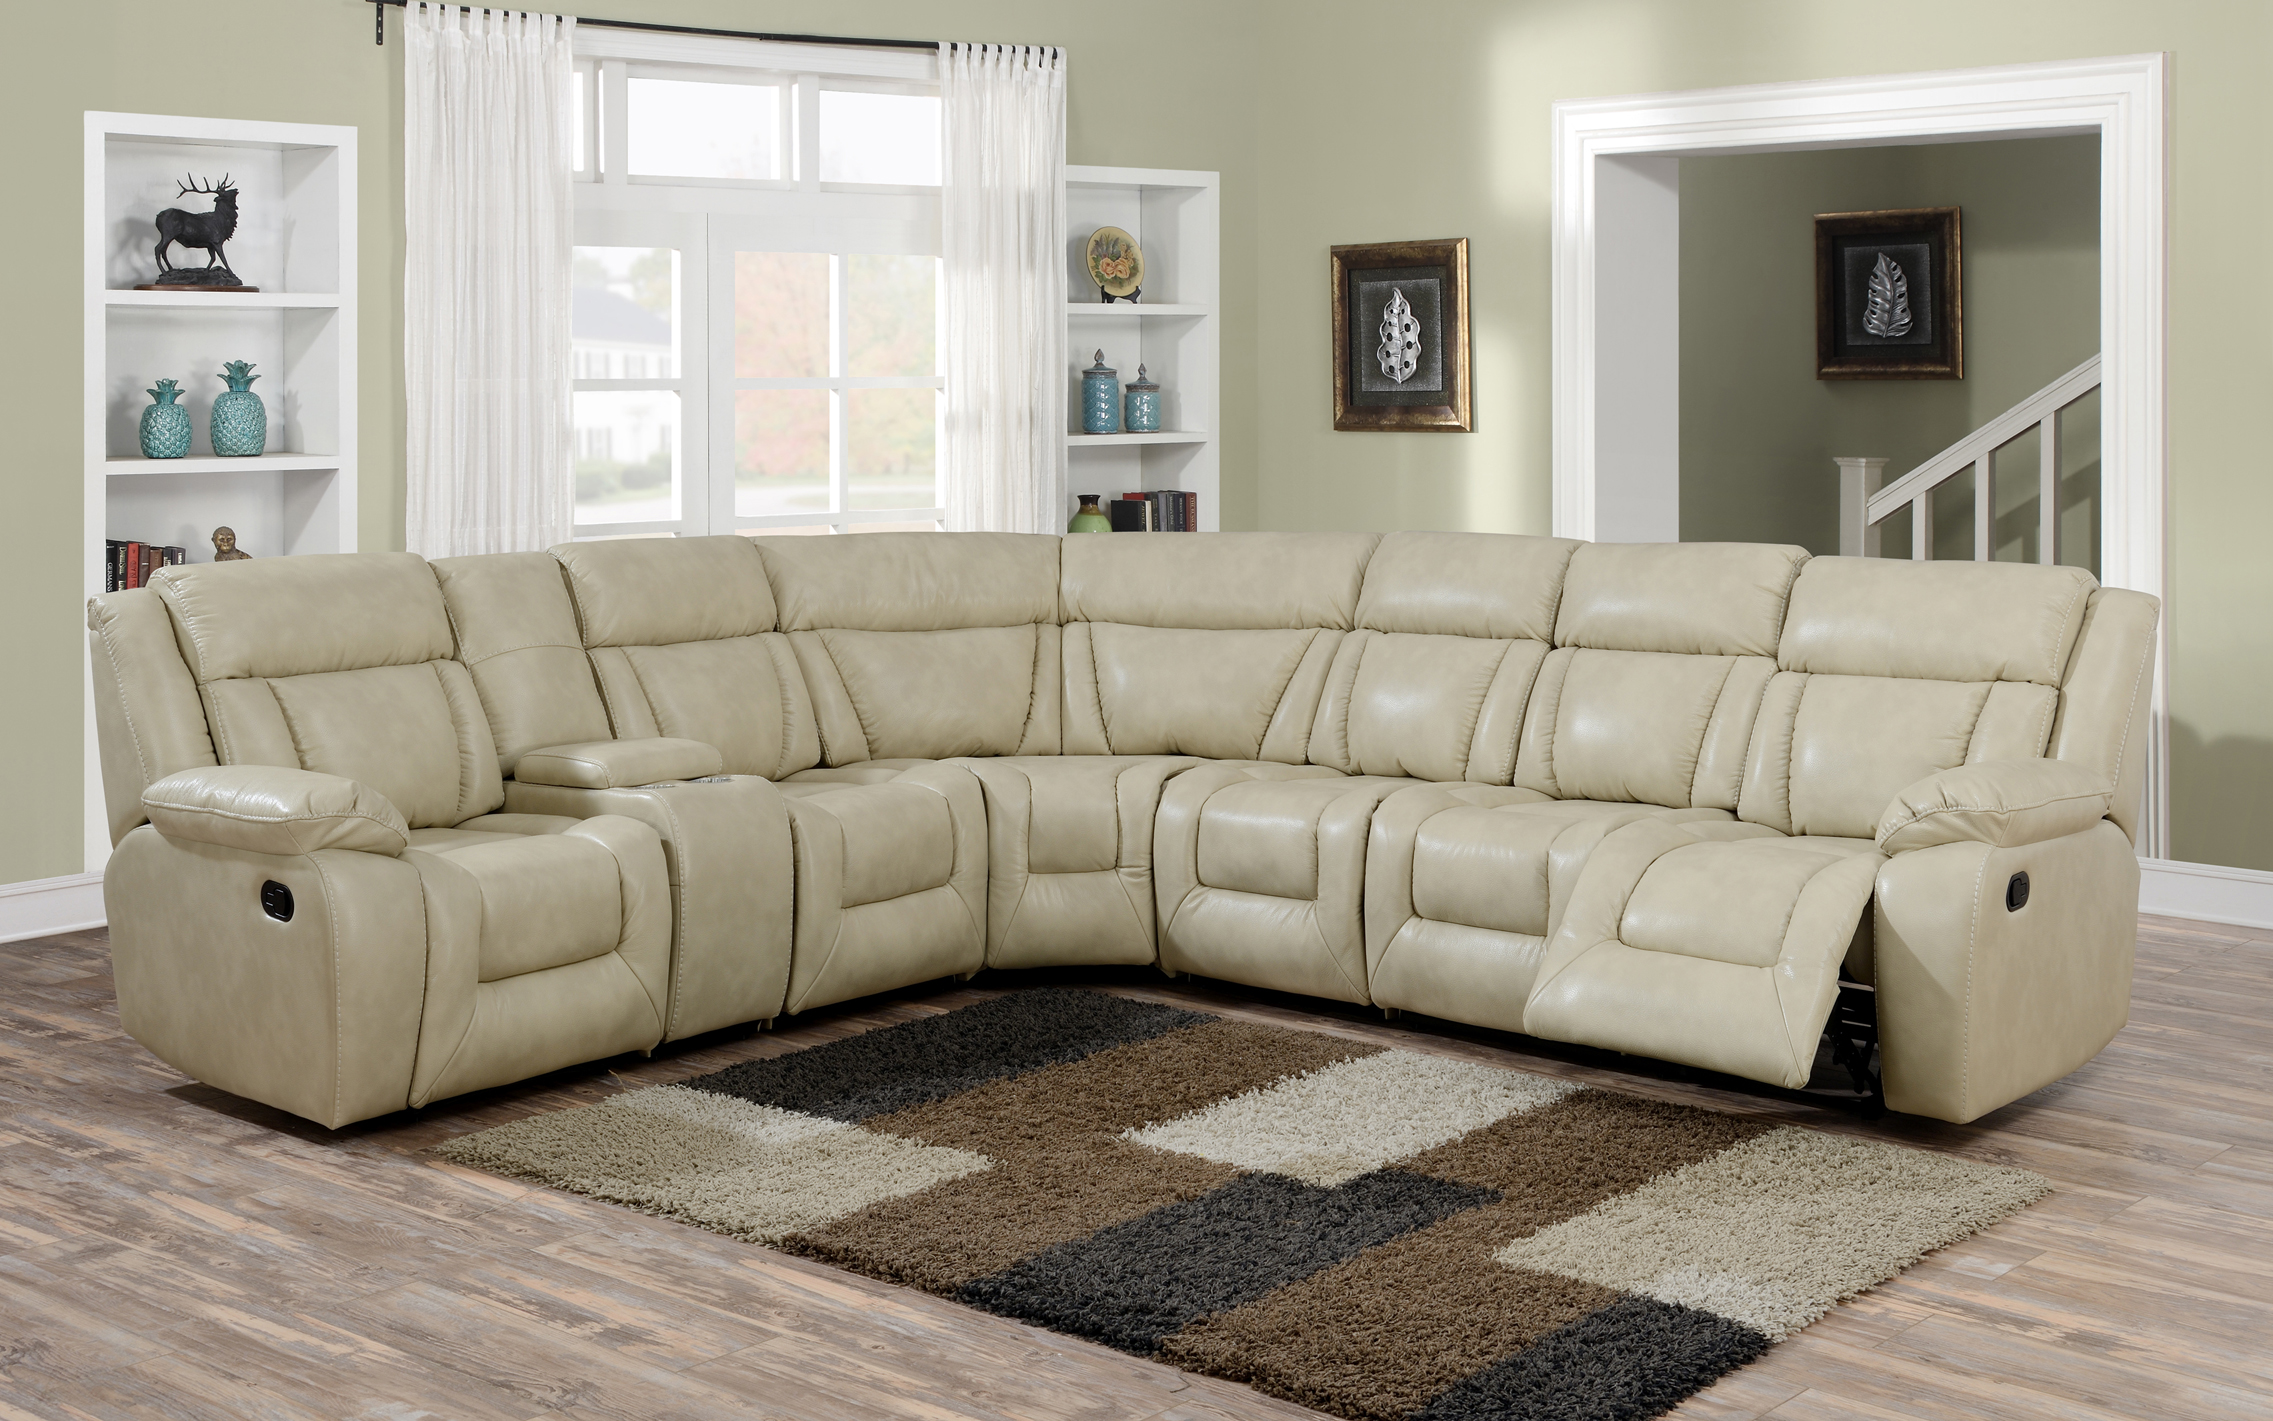 evergreen beige leather recliner sectional furtado furniture. Black Bedroom Furniture Sets. Home Design Ideas